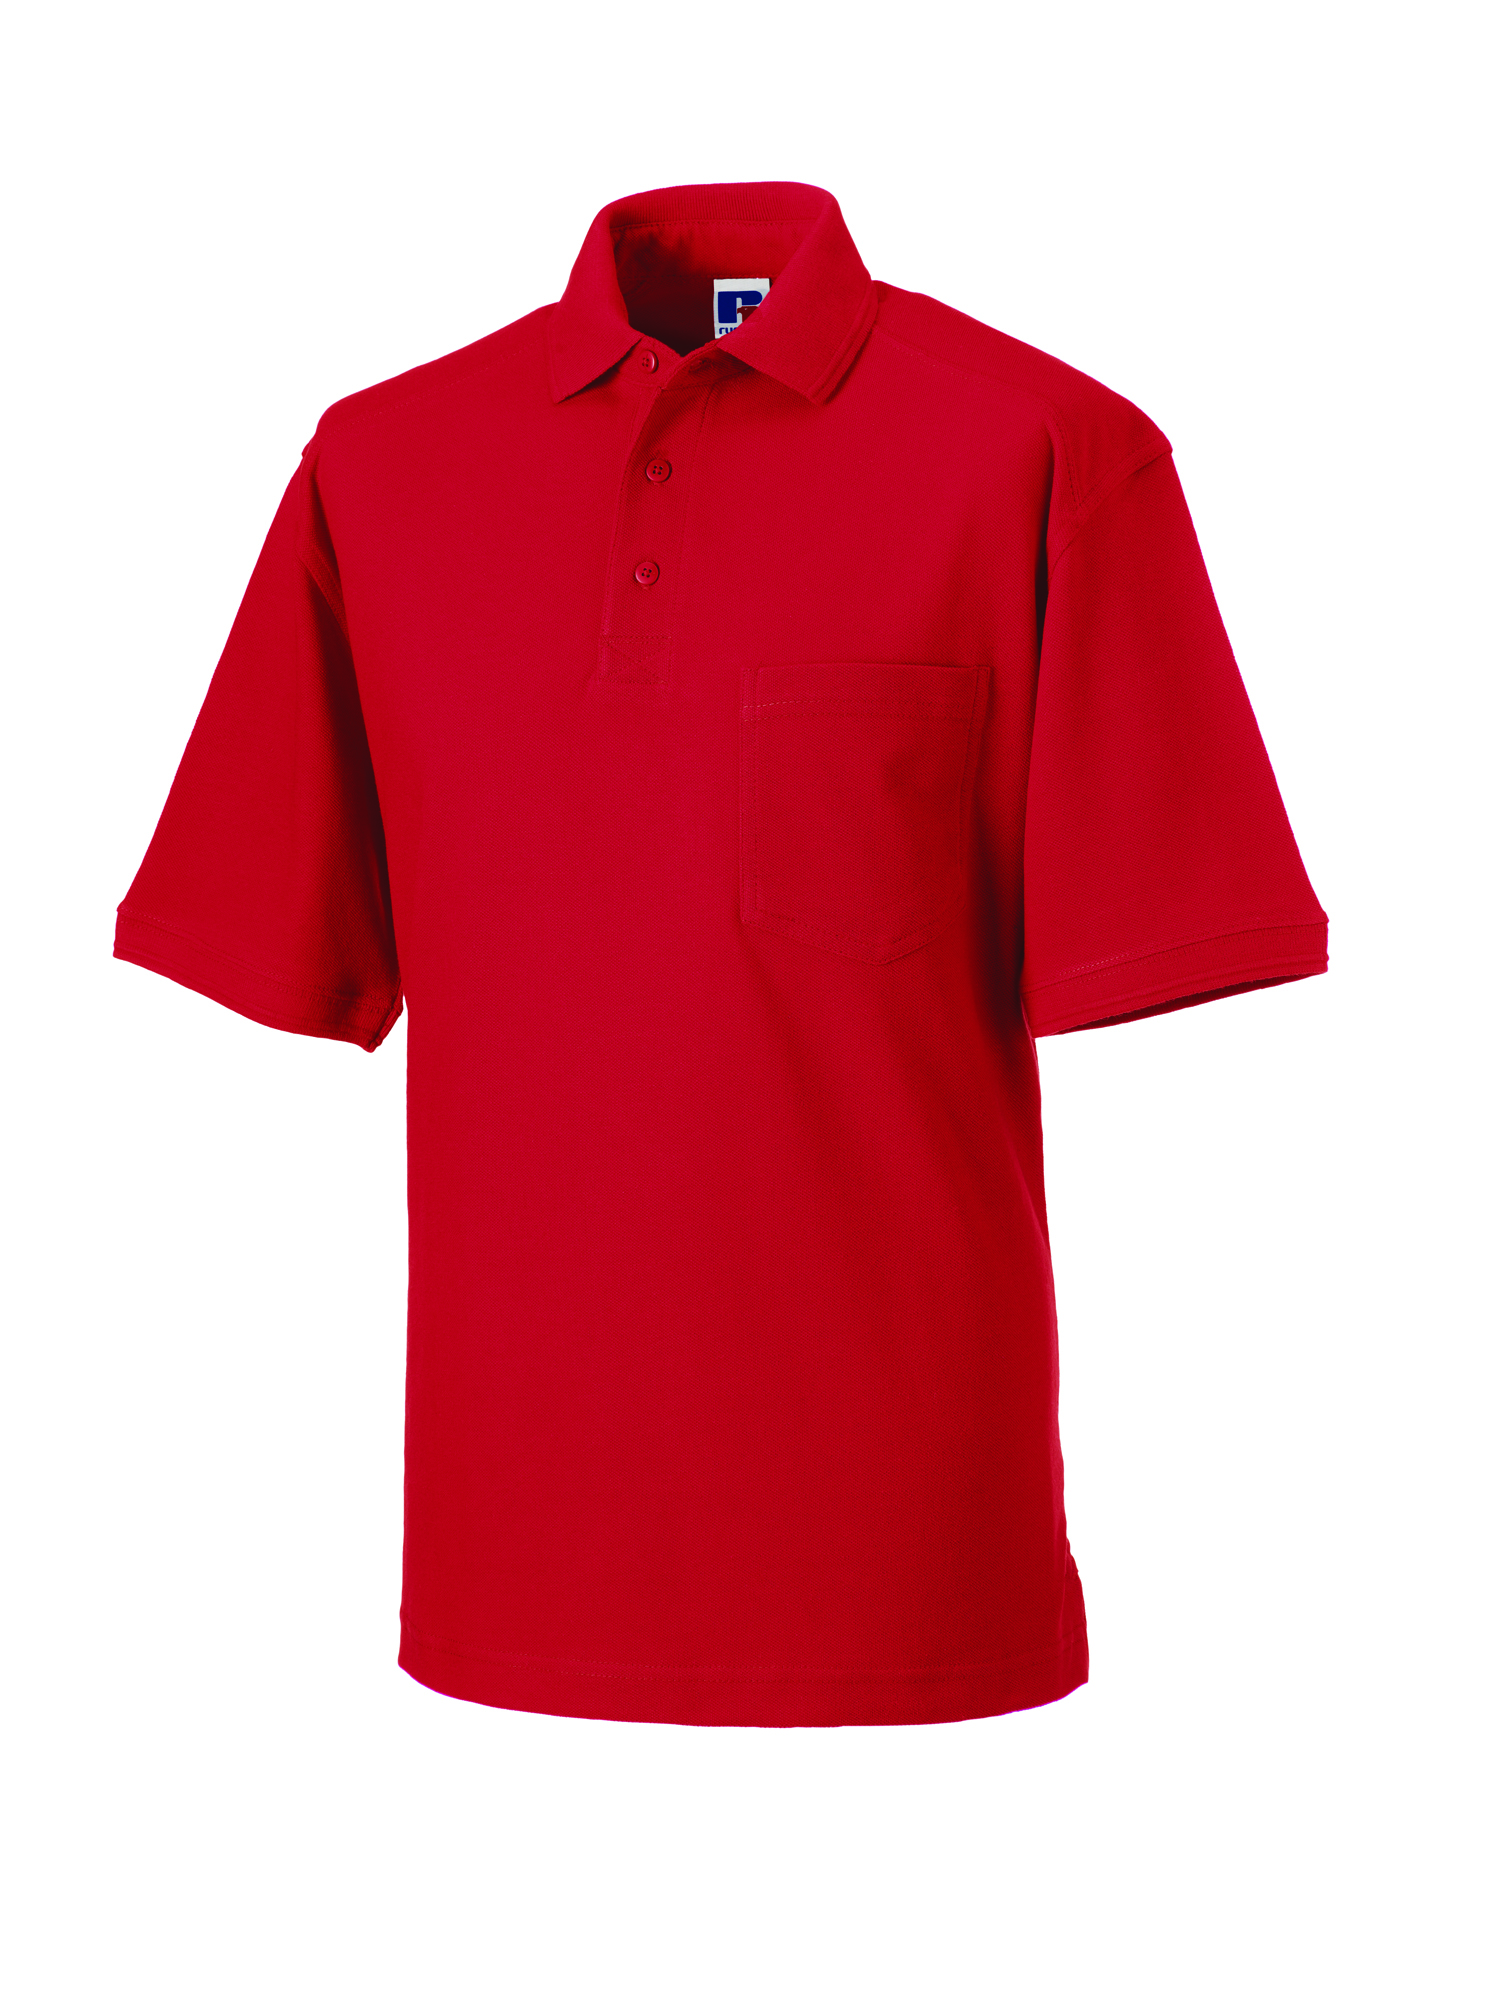 Heavy Duty Cotton Polo - Classic Red - S